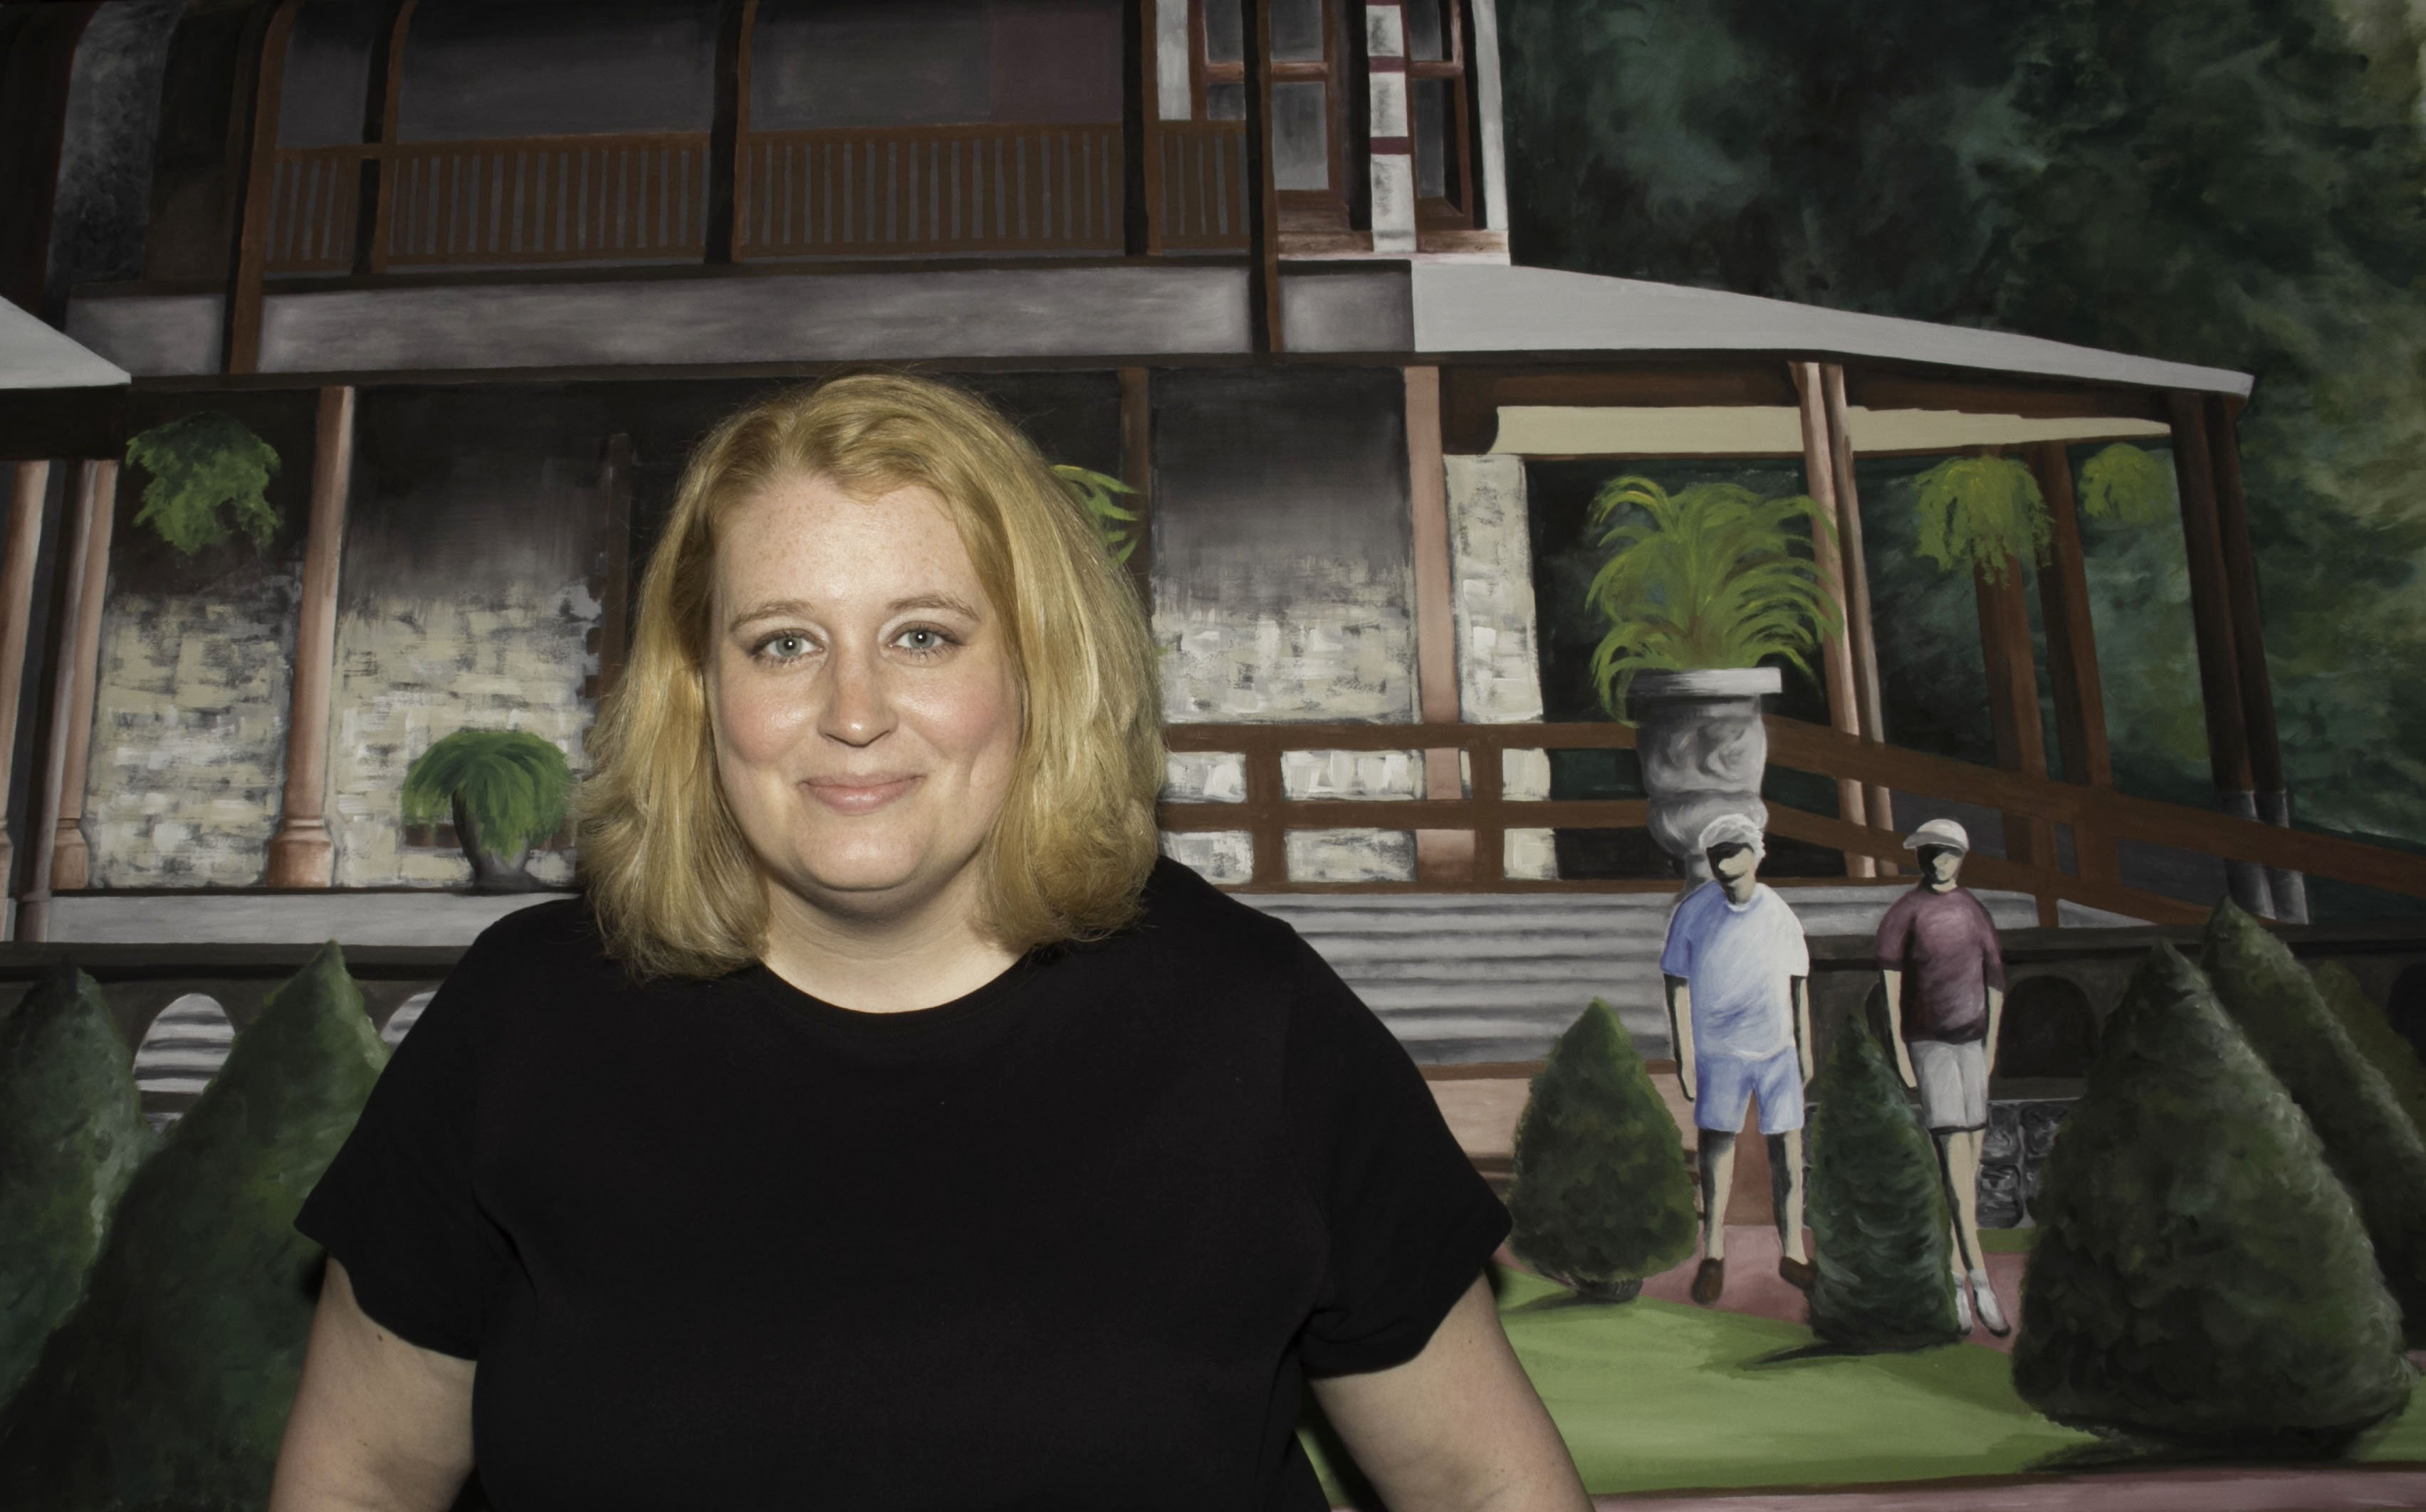 Canandaigua's Commons Park Mural: Highlighting Artist Melissa Newcomb